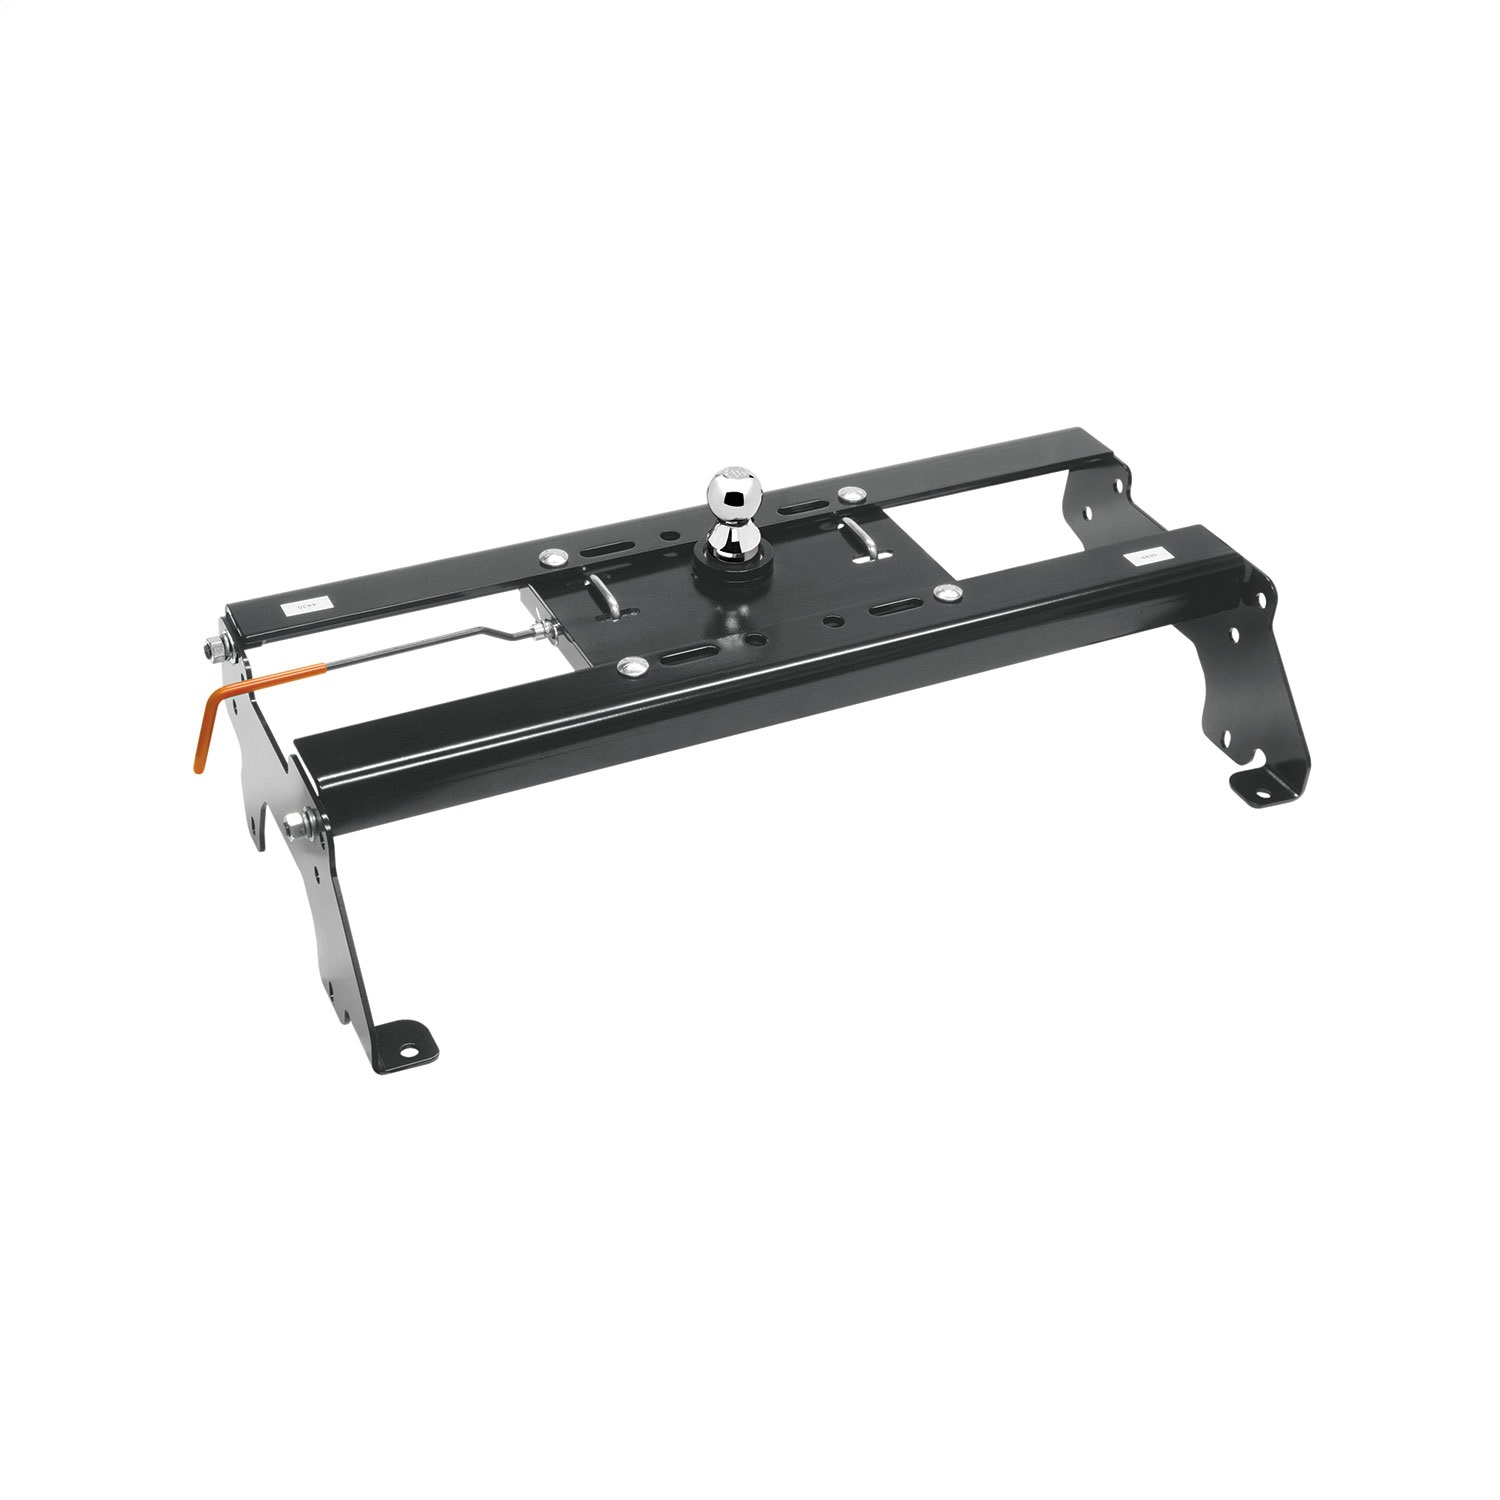 Gooseneck Trailer Hitch